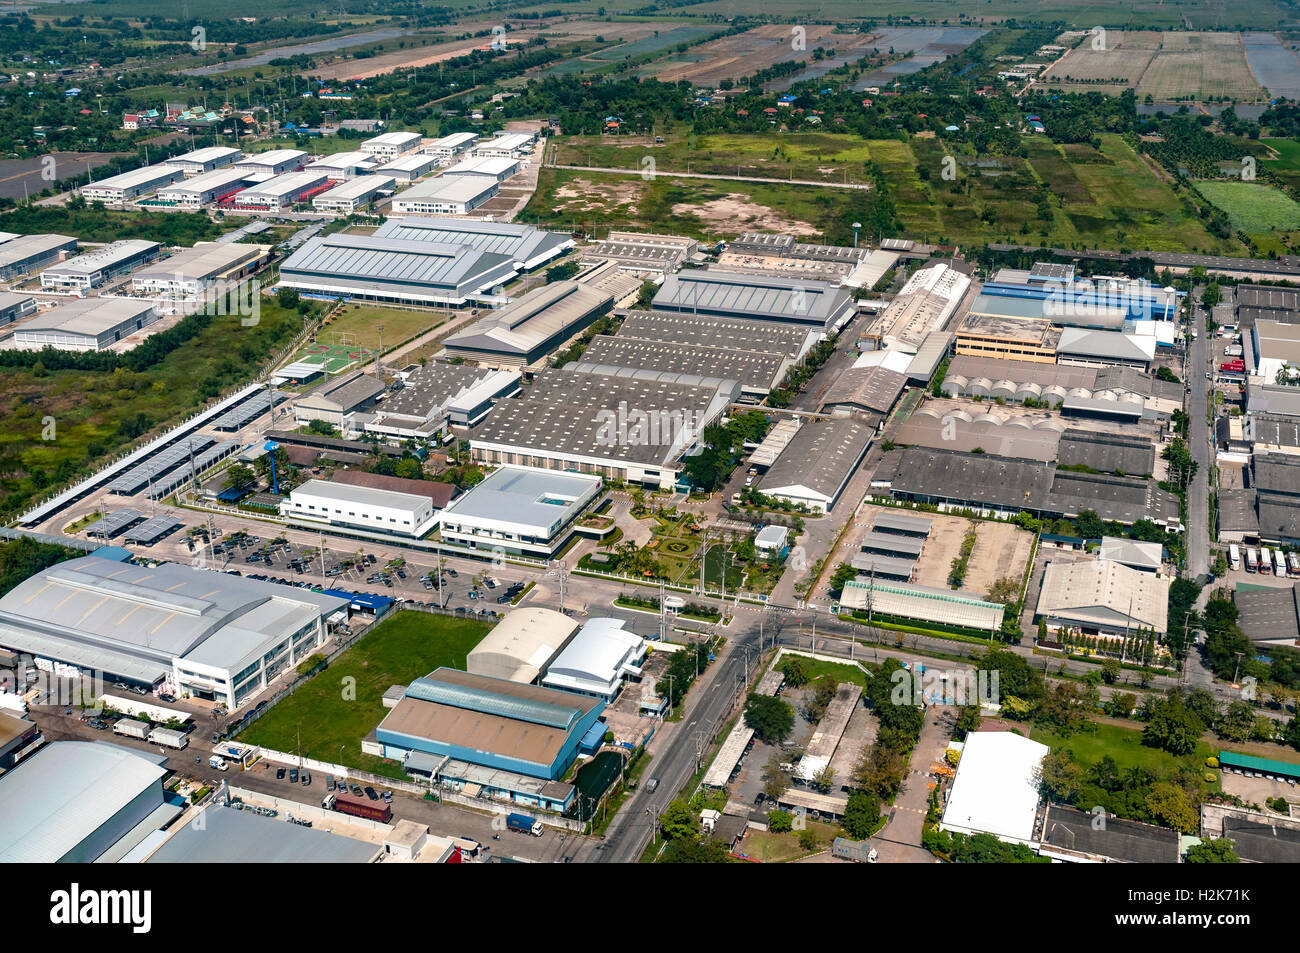 Industrial estate factories warehouse storage facilities and land development - Stock Image